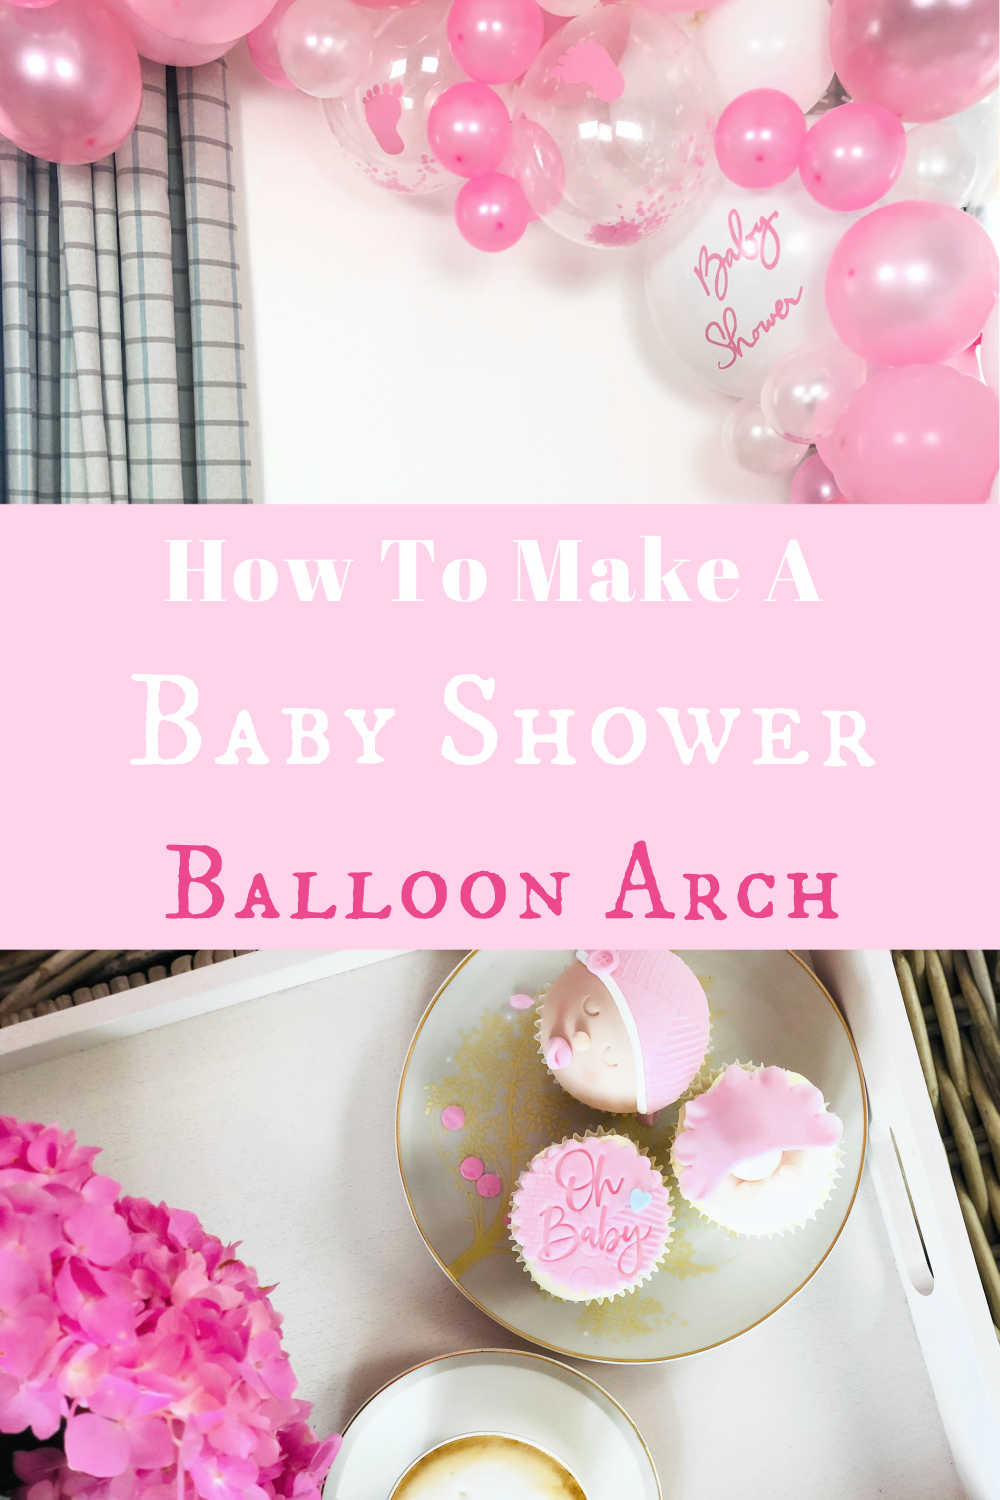 How to make a Baby Shower Balloon Arch